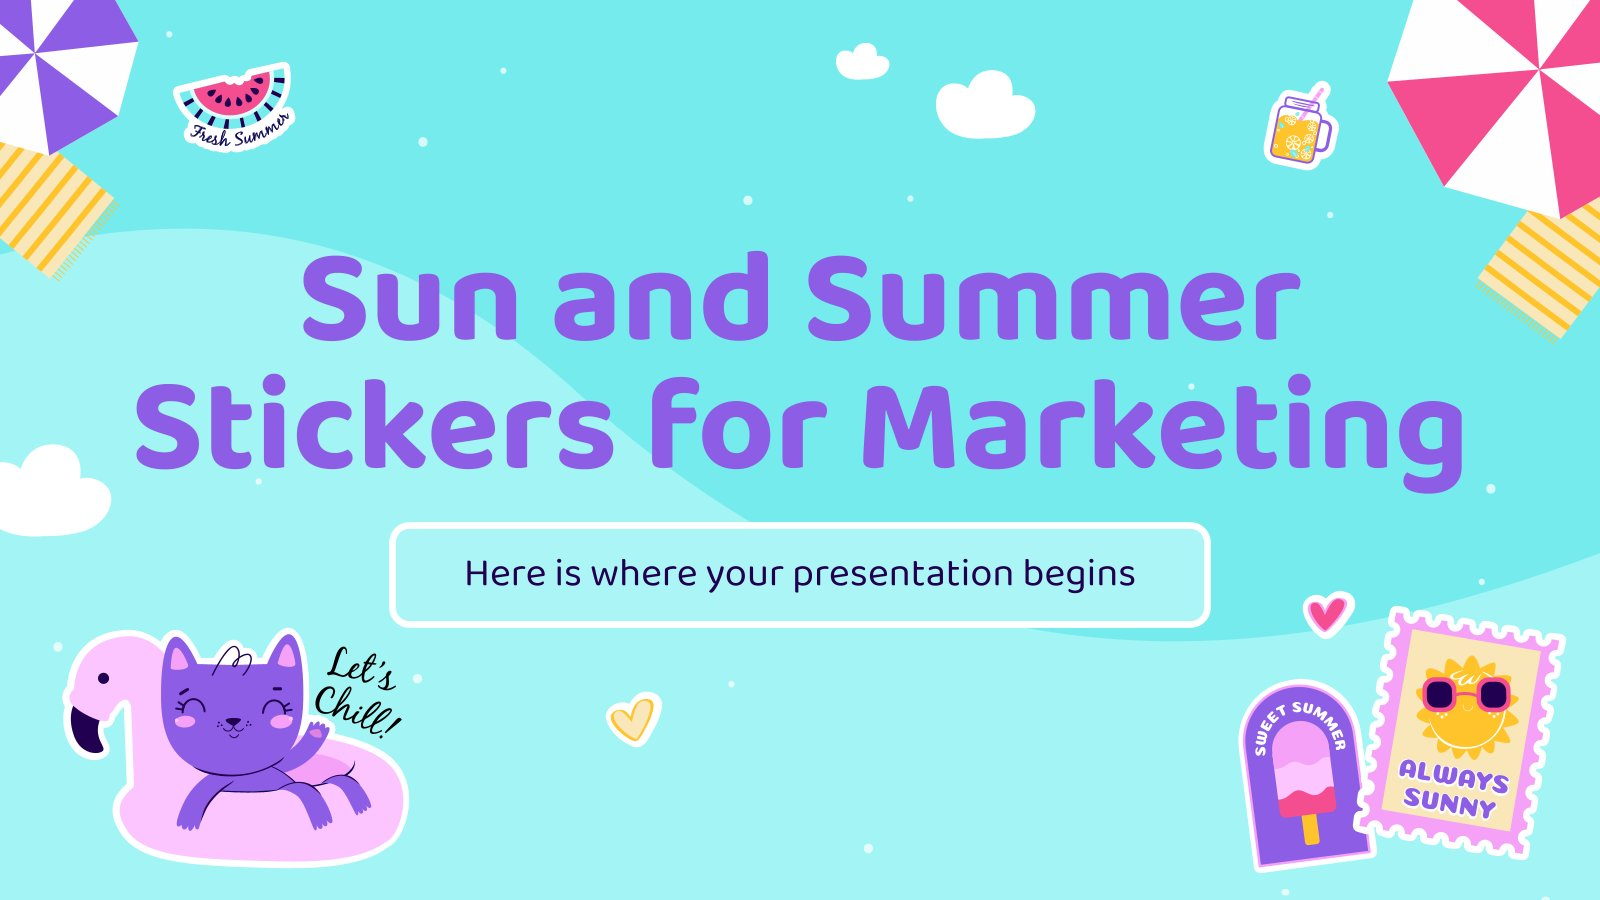 Sun and Summer Stickers for Marketing presentation template